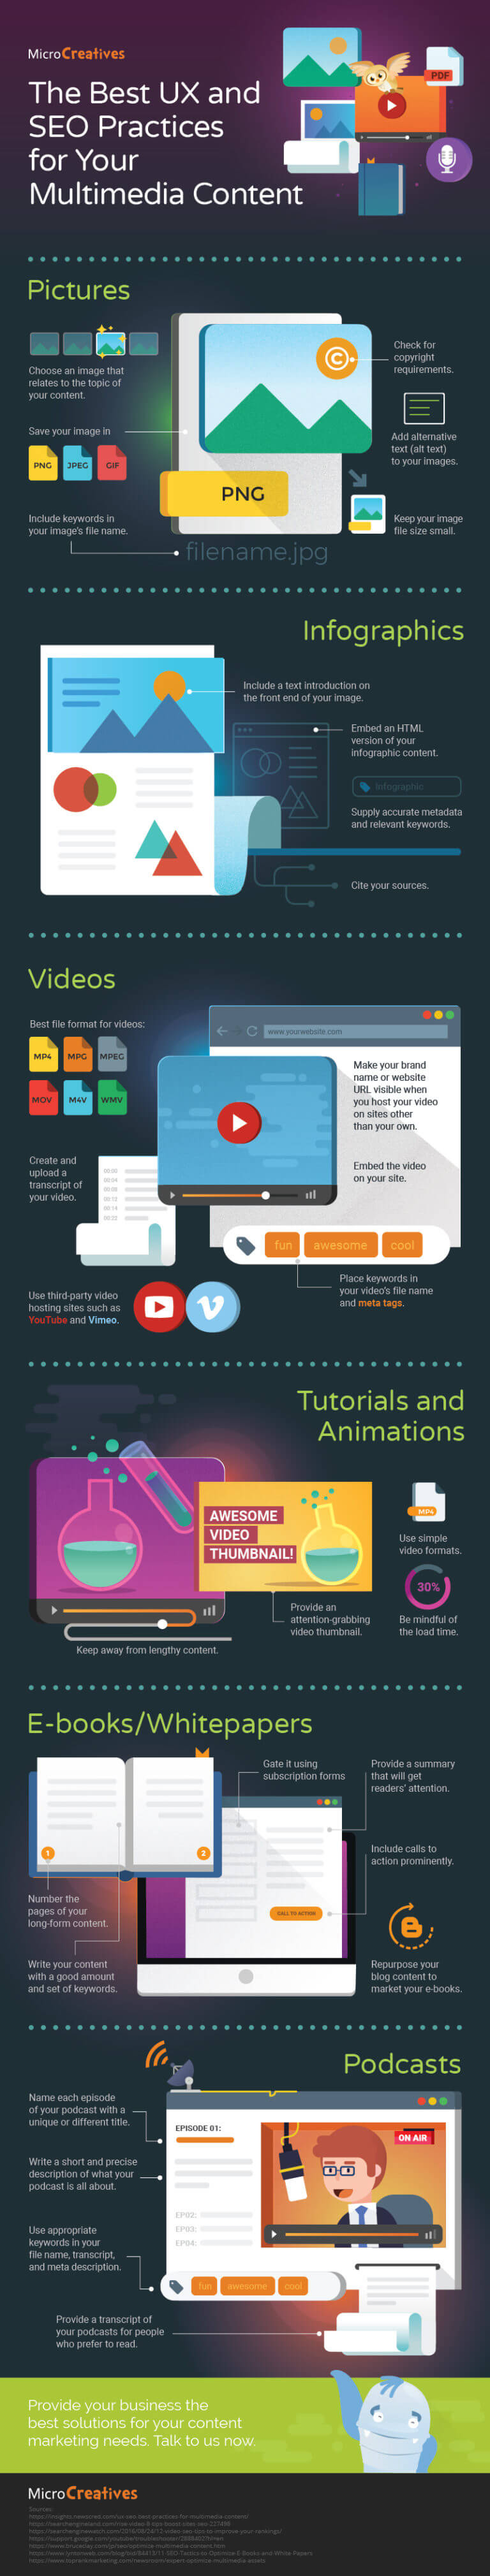 The Best UX and SEO Practices for Your Multimedia Content.